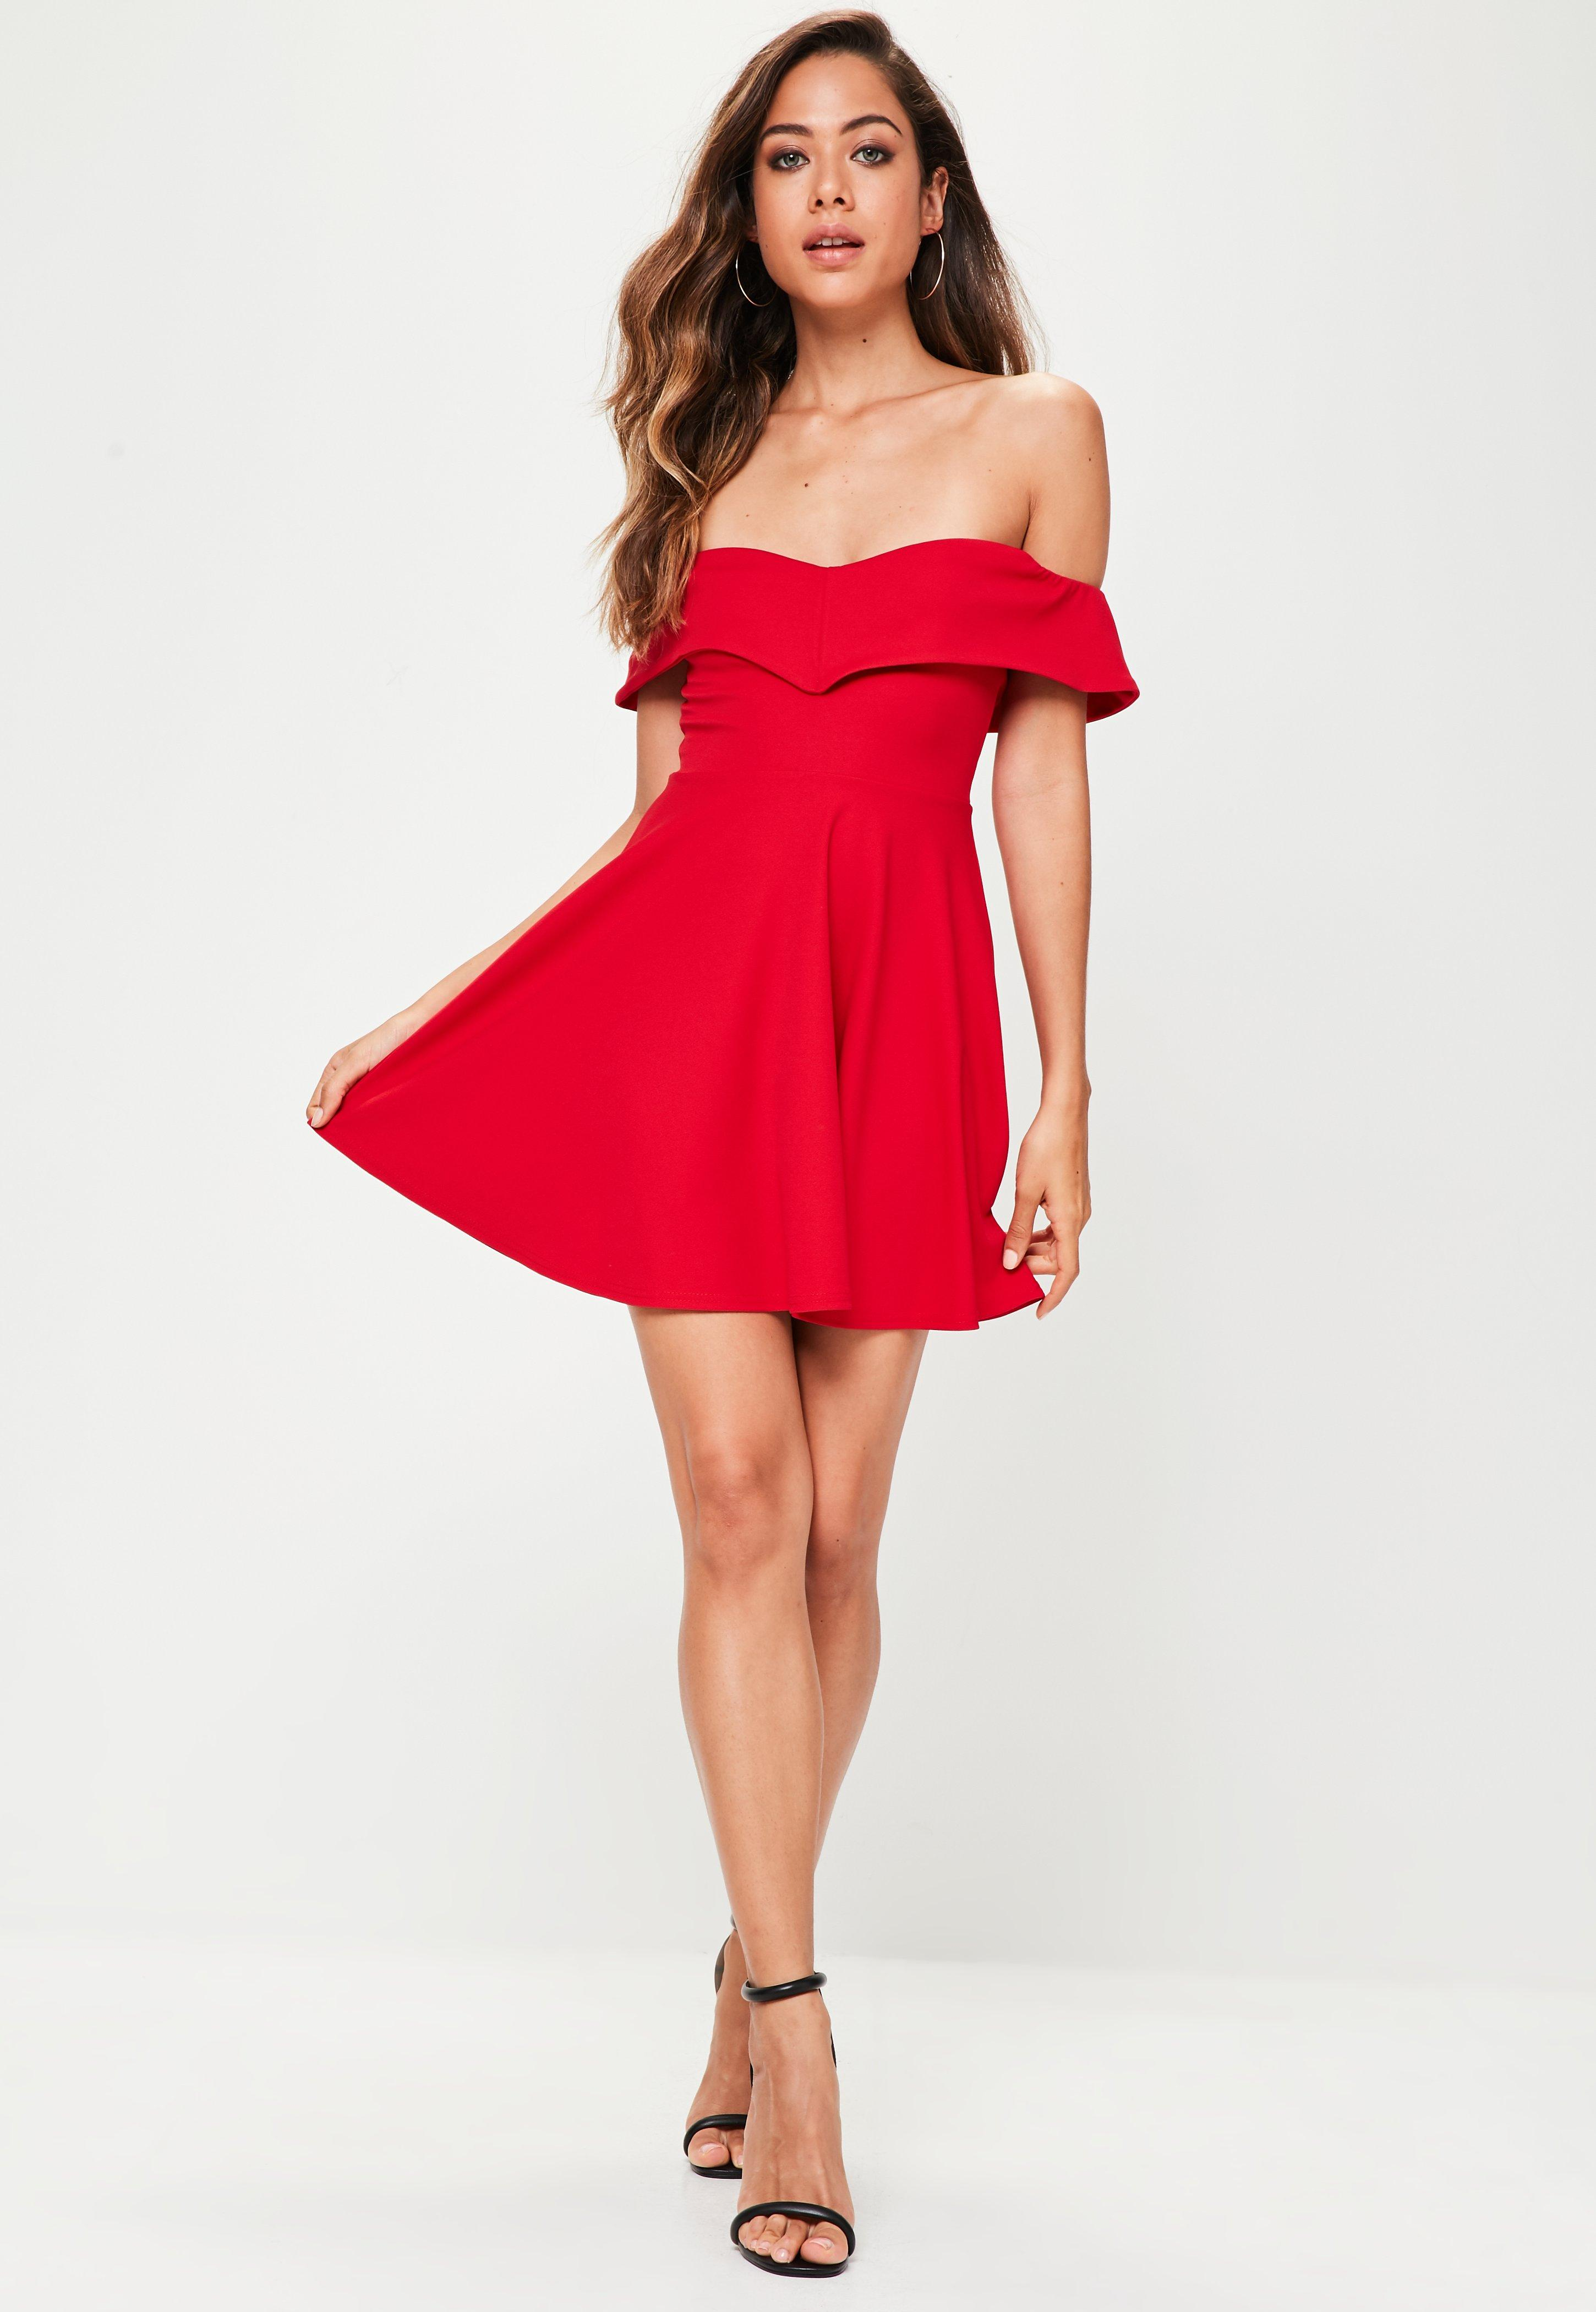 Petite Clothing | Womens Petite Clothes Online - Missguided